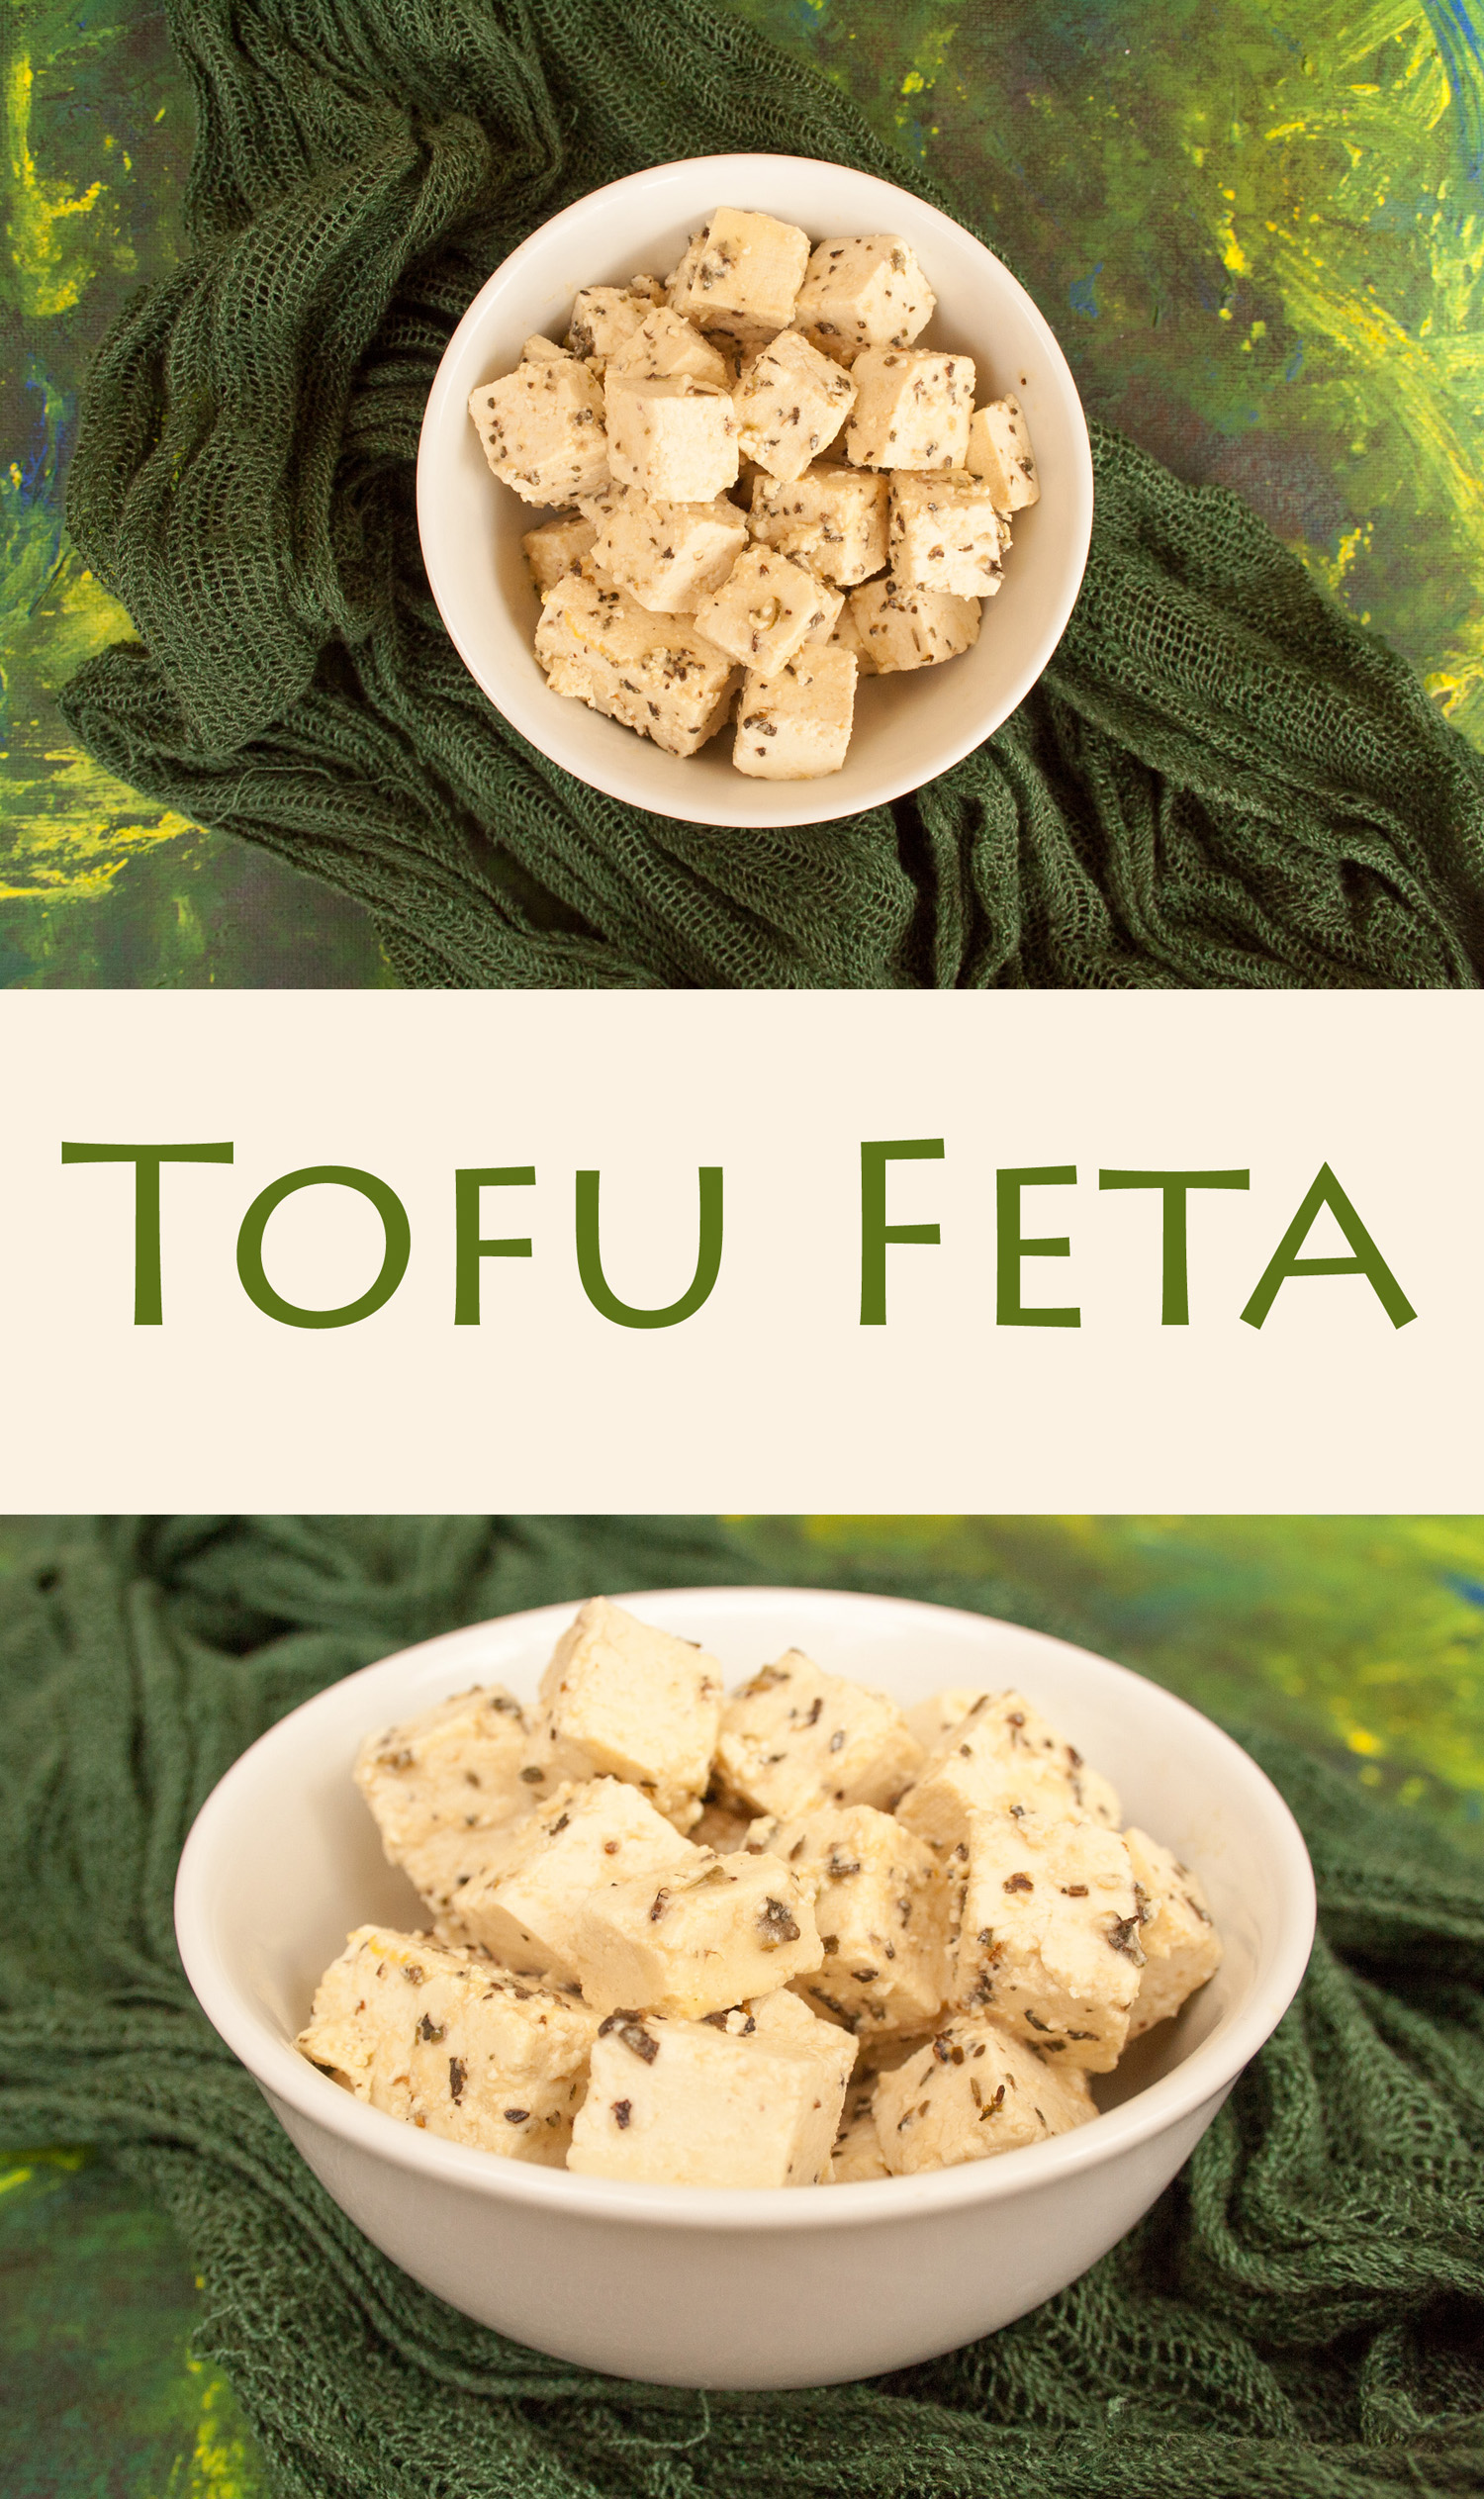 """Tofu Feta - This vegan feta will have you wondering why you ever wanted the dairy version! It is marinated in herbs and vinegar to give it a wonderful tangy, """"cheesy"""" flavor."""